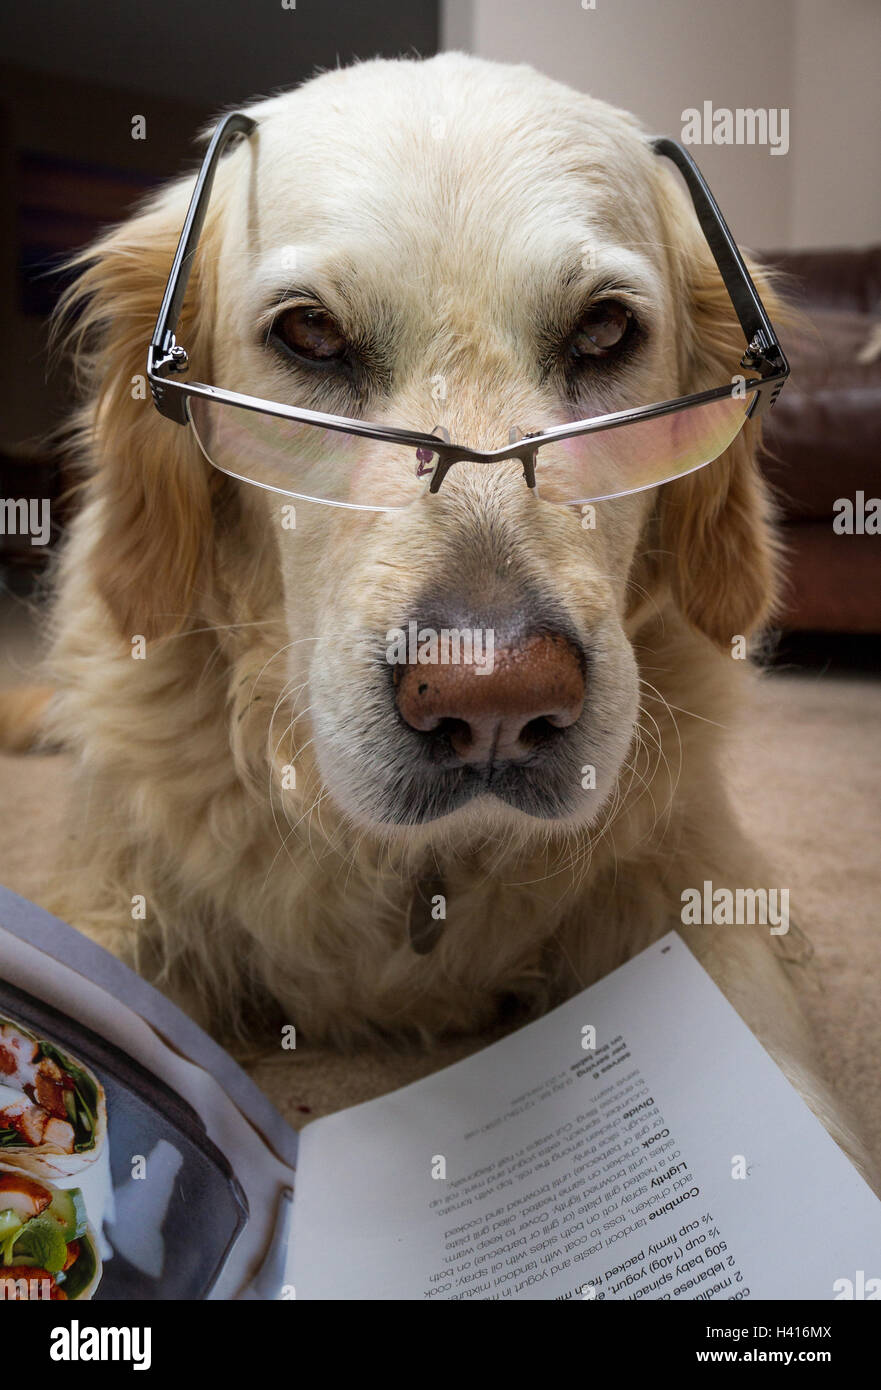 dog looking intelligent with glasses and recipe book - Stock Image